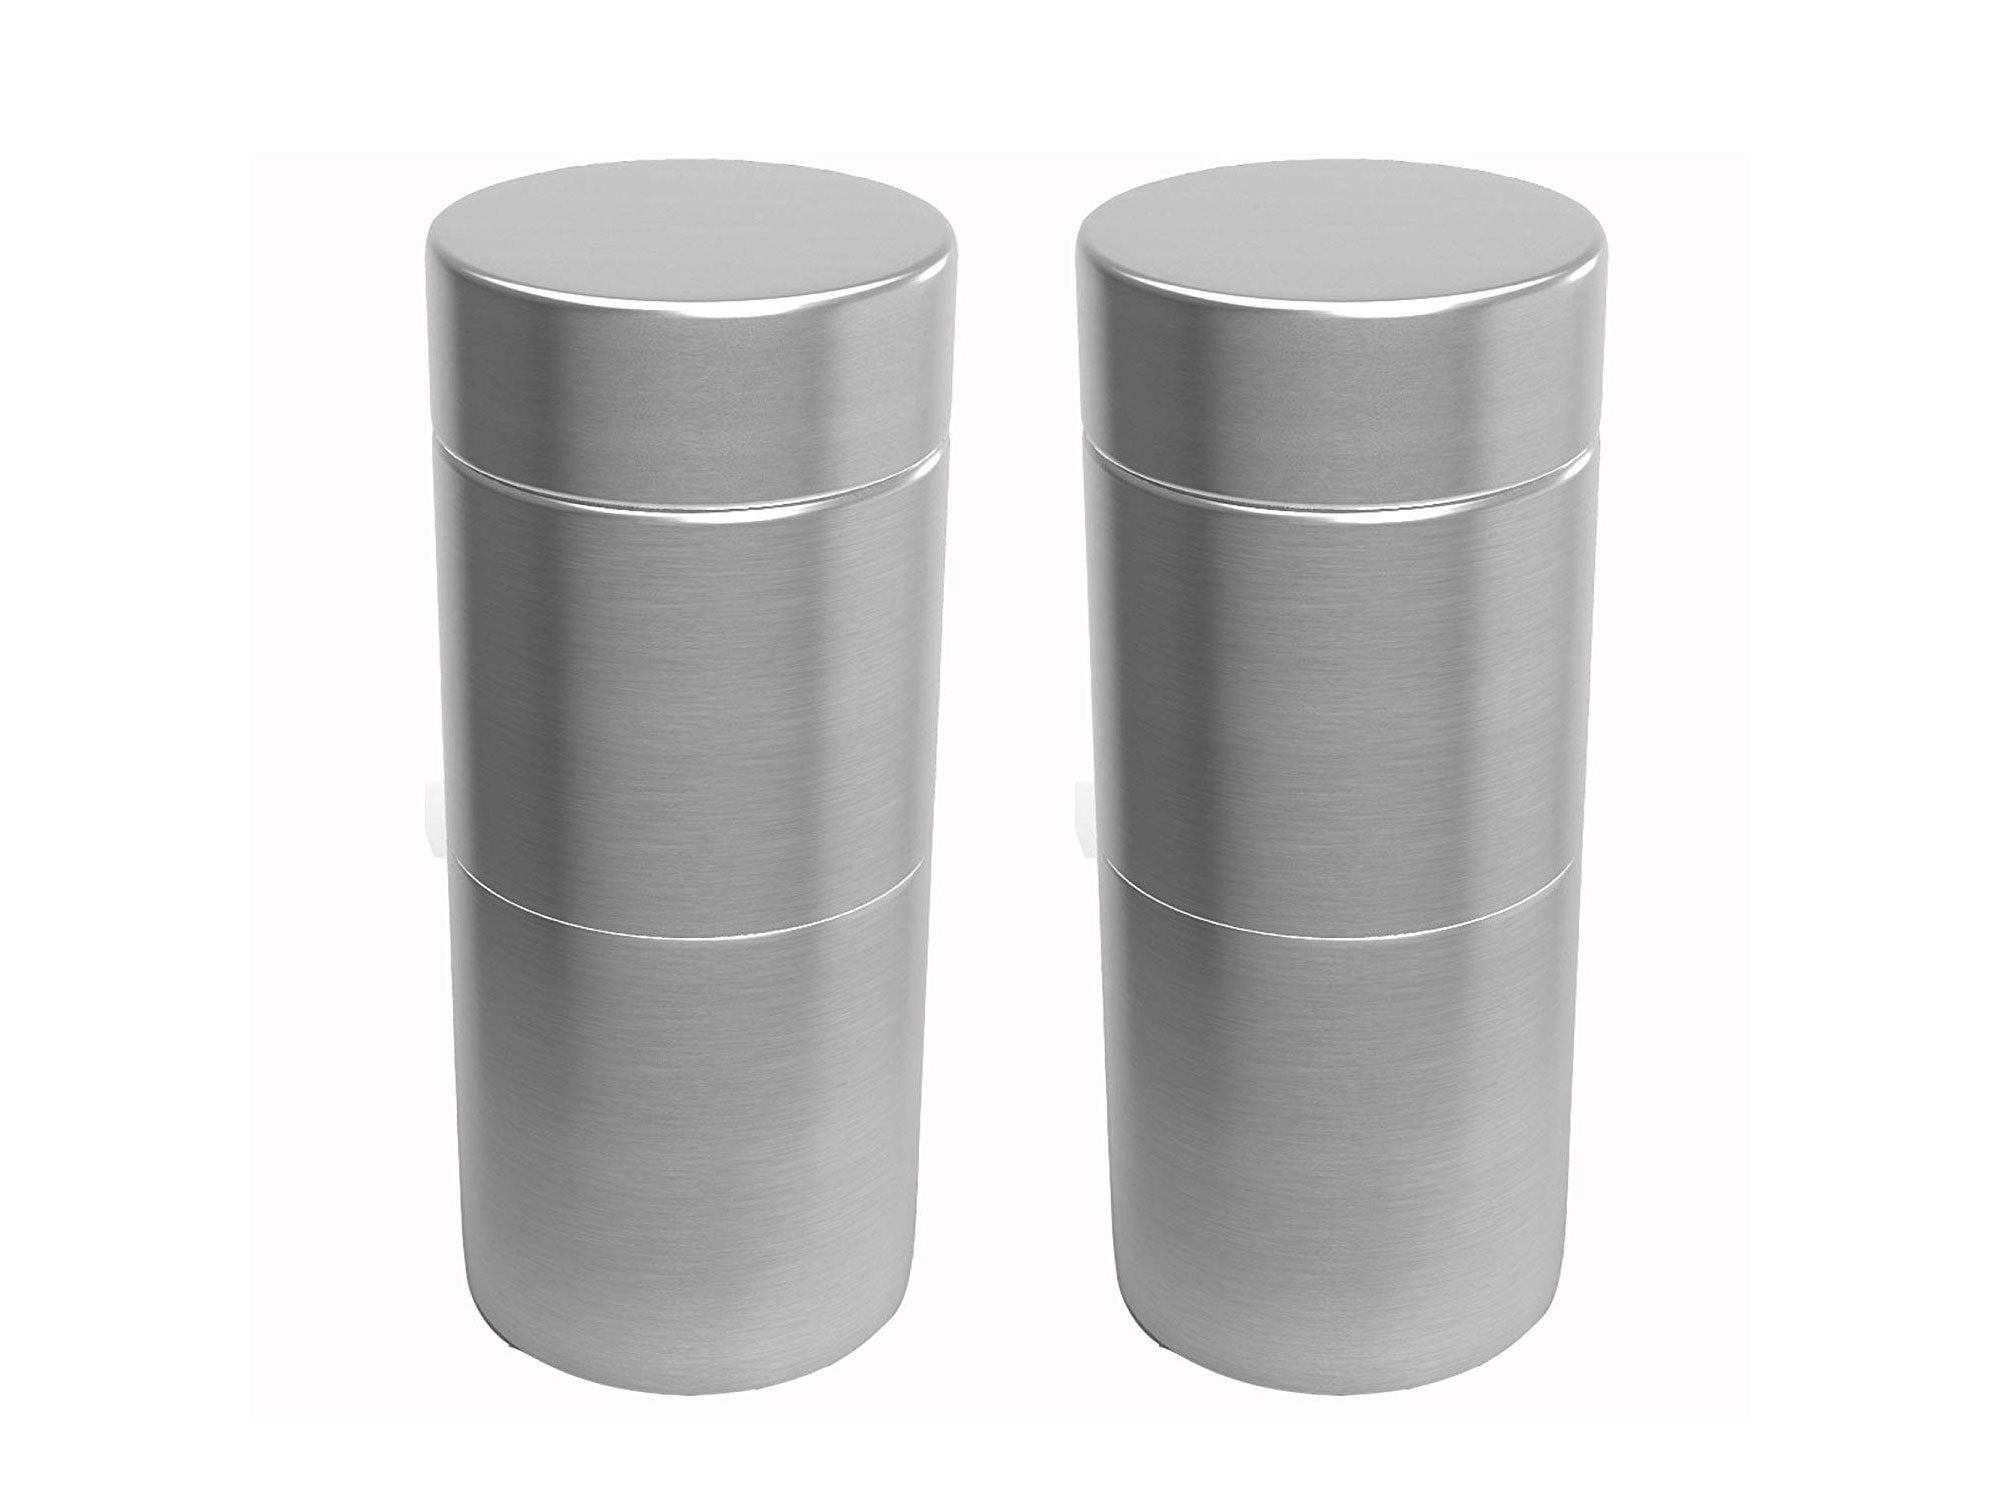 Herb Stash Jars Aluminum Airtight Smell Proof Containers